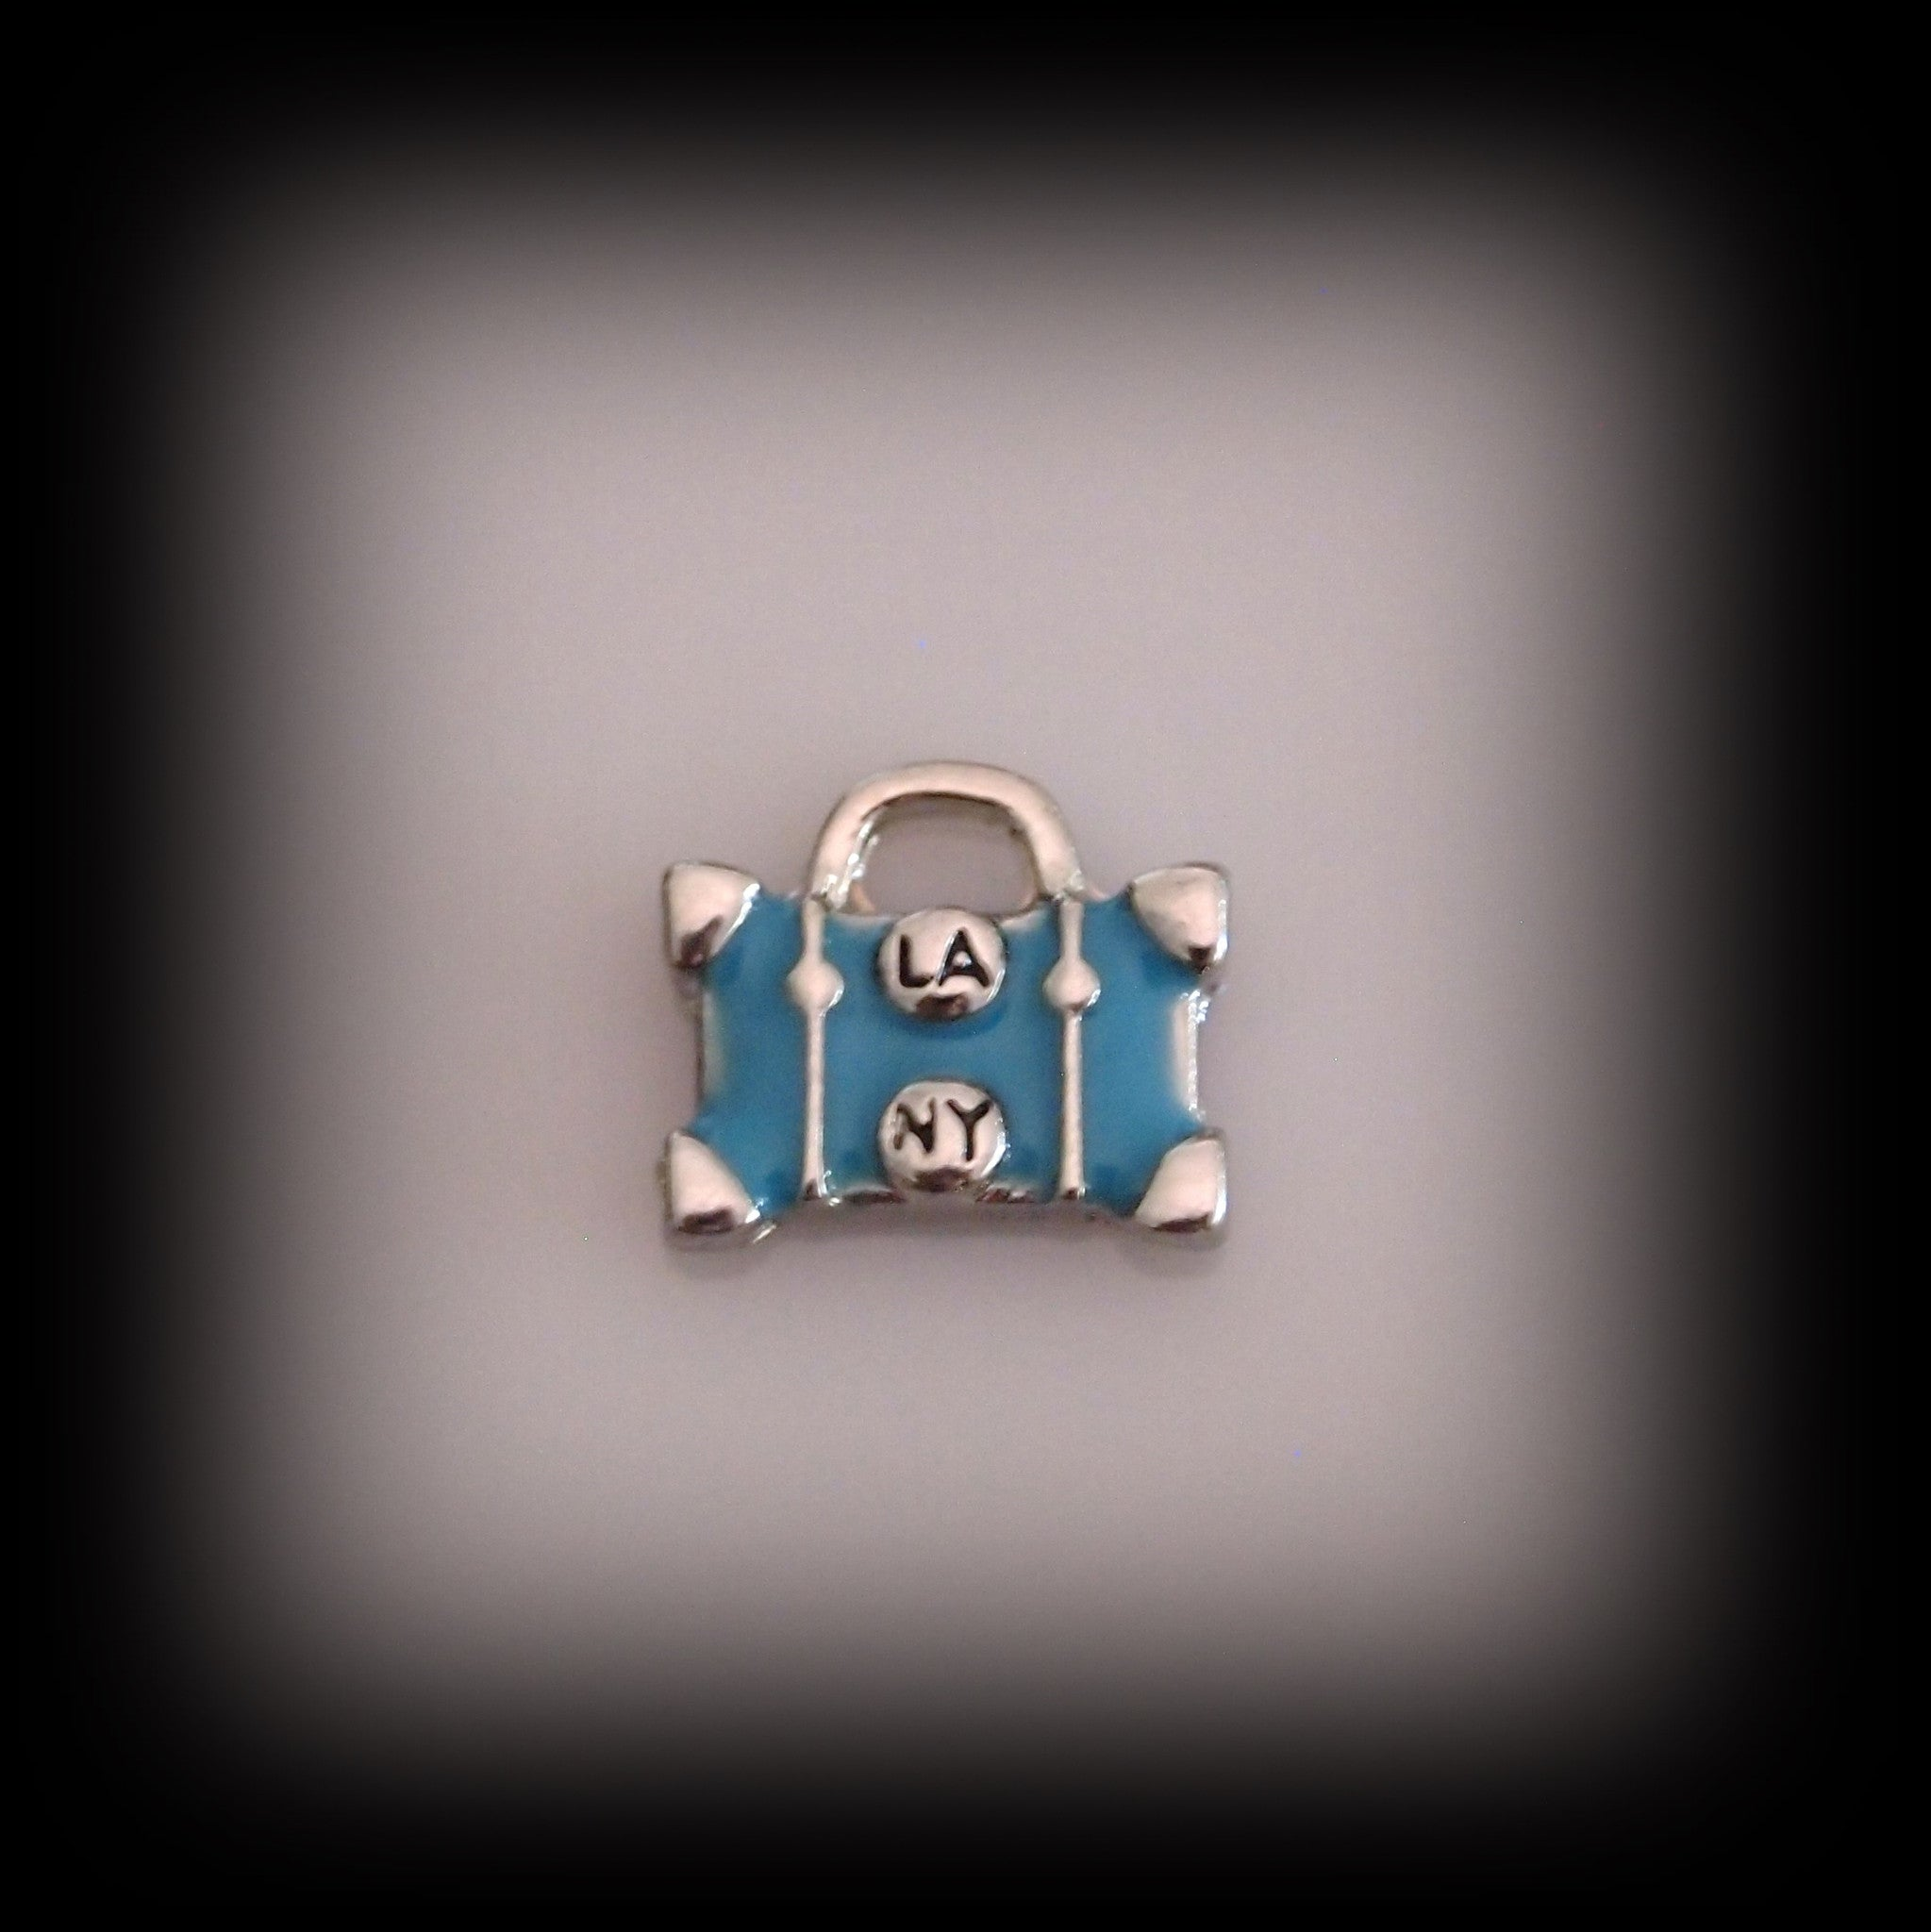 LA NY Luggage Floating Charm - Find Something Special - 1